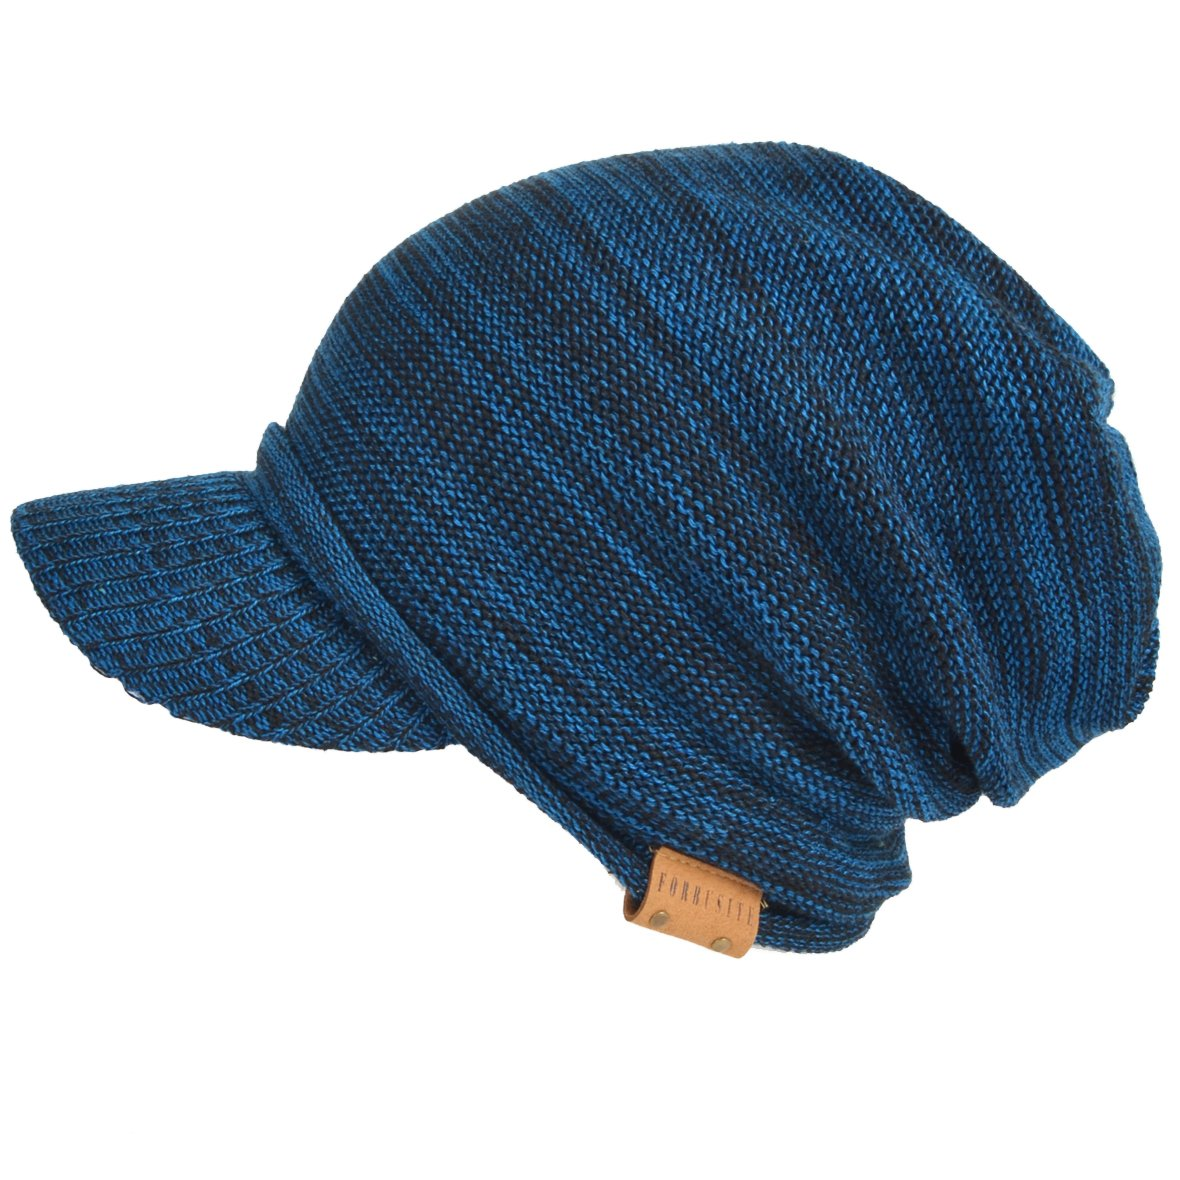 6bfd4c2d8dd Mens Womens Thick Fleece Lined Knit Newsboy Cap Slouch Beanie Hat with Visor  (Blue) at Amazon Men s Clothing store